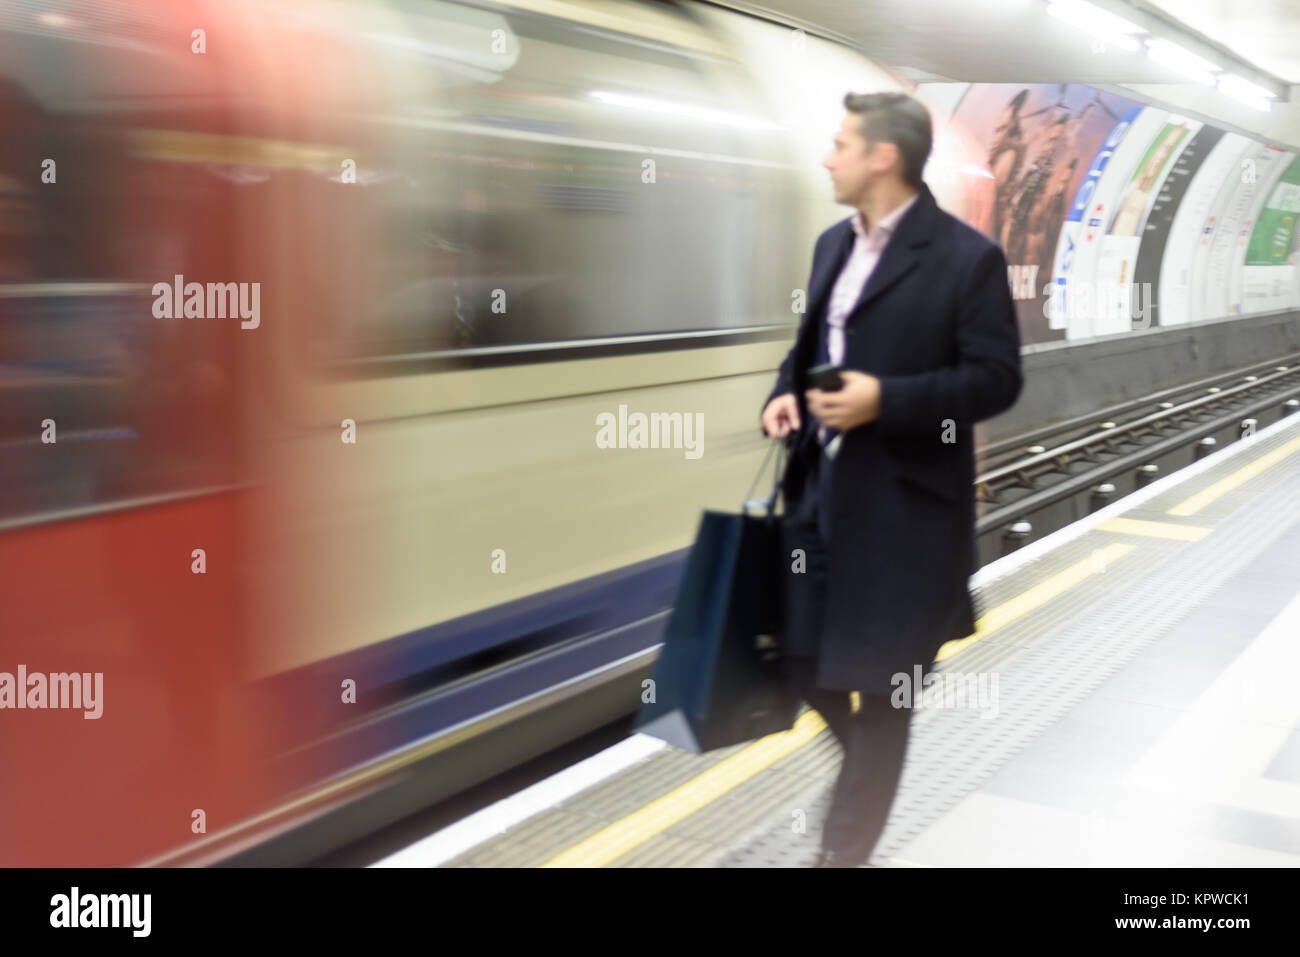 Intentional blurred motion blur of people using London Underground trains as the tube for public transport - Stock Image